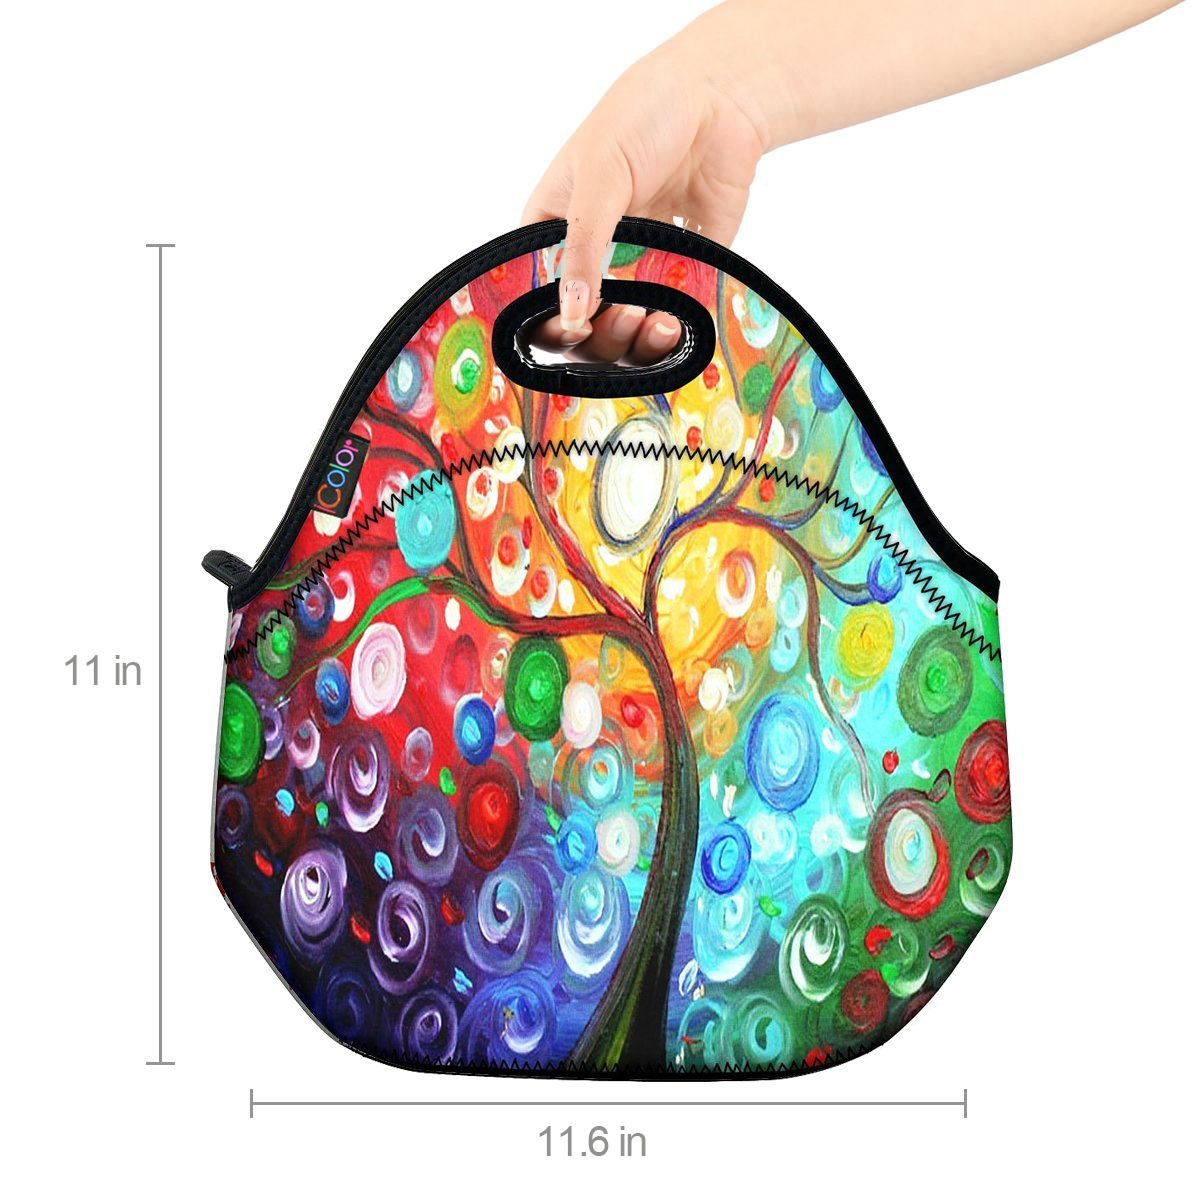 Handbag lunchbox Food Container Gourmet Tote Cooler warm Pouch For School work Office